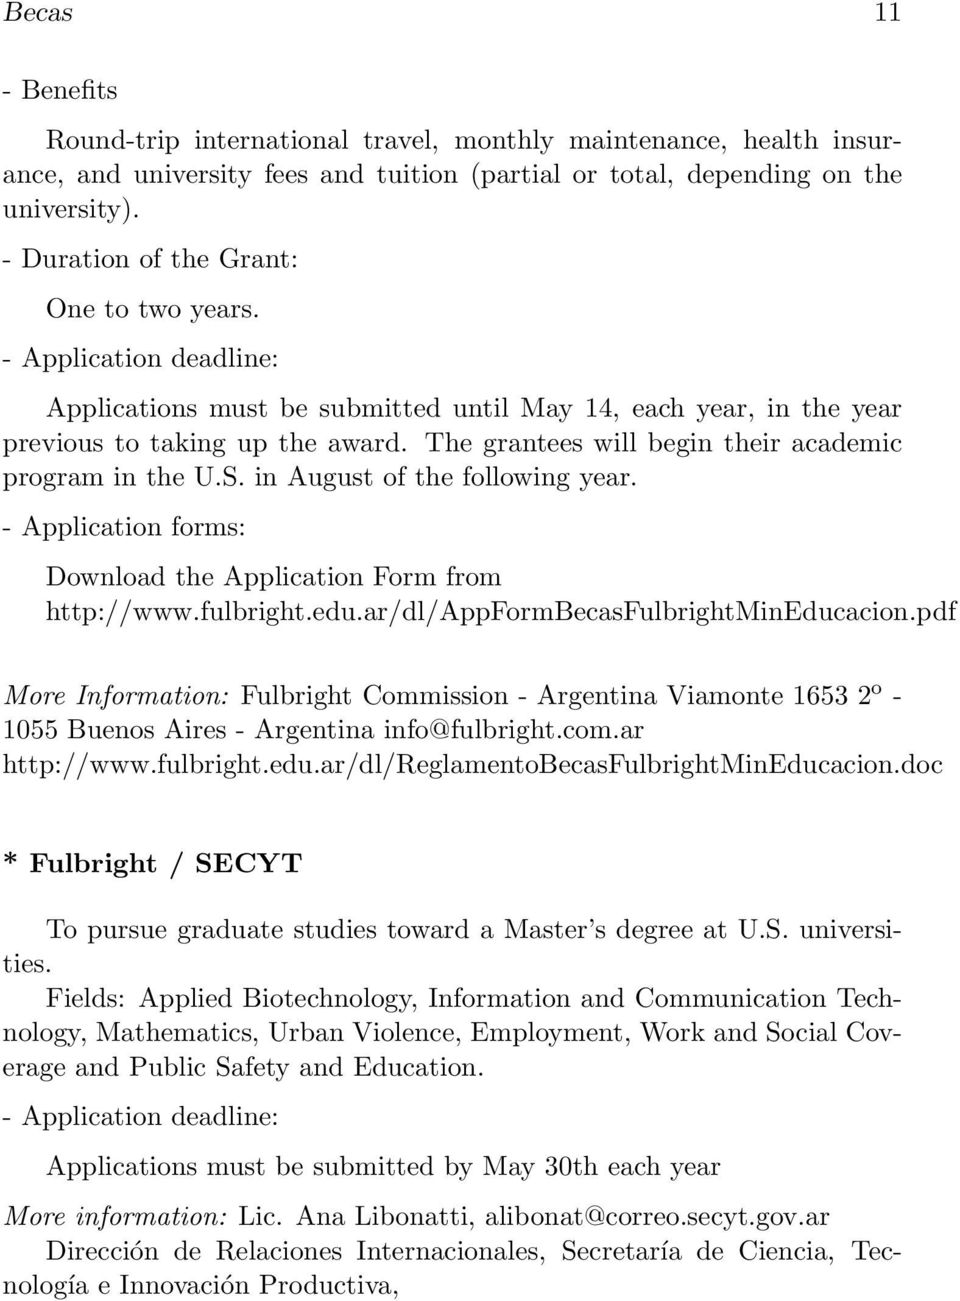 The grantees will begin their academic program in the U.S. in August of the following year. - Application forms: Download the Application Form from http://www.fulbright.edu.